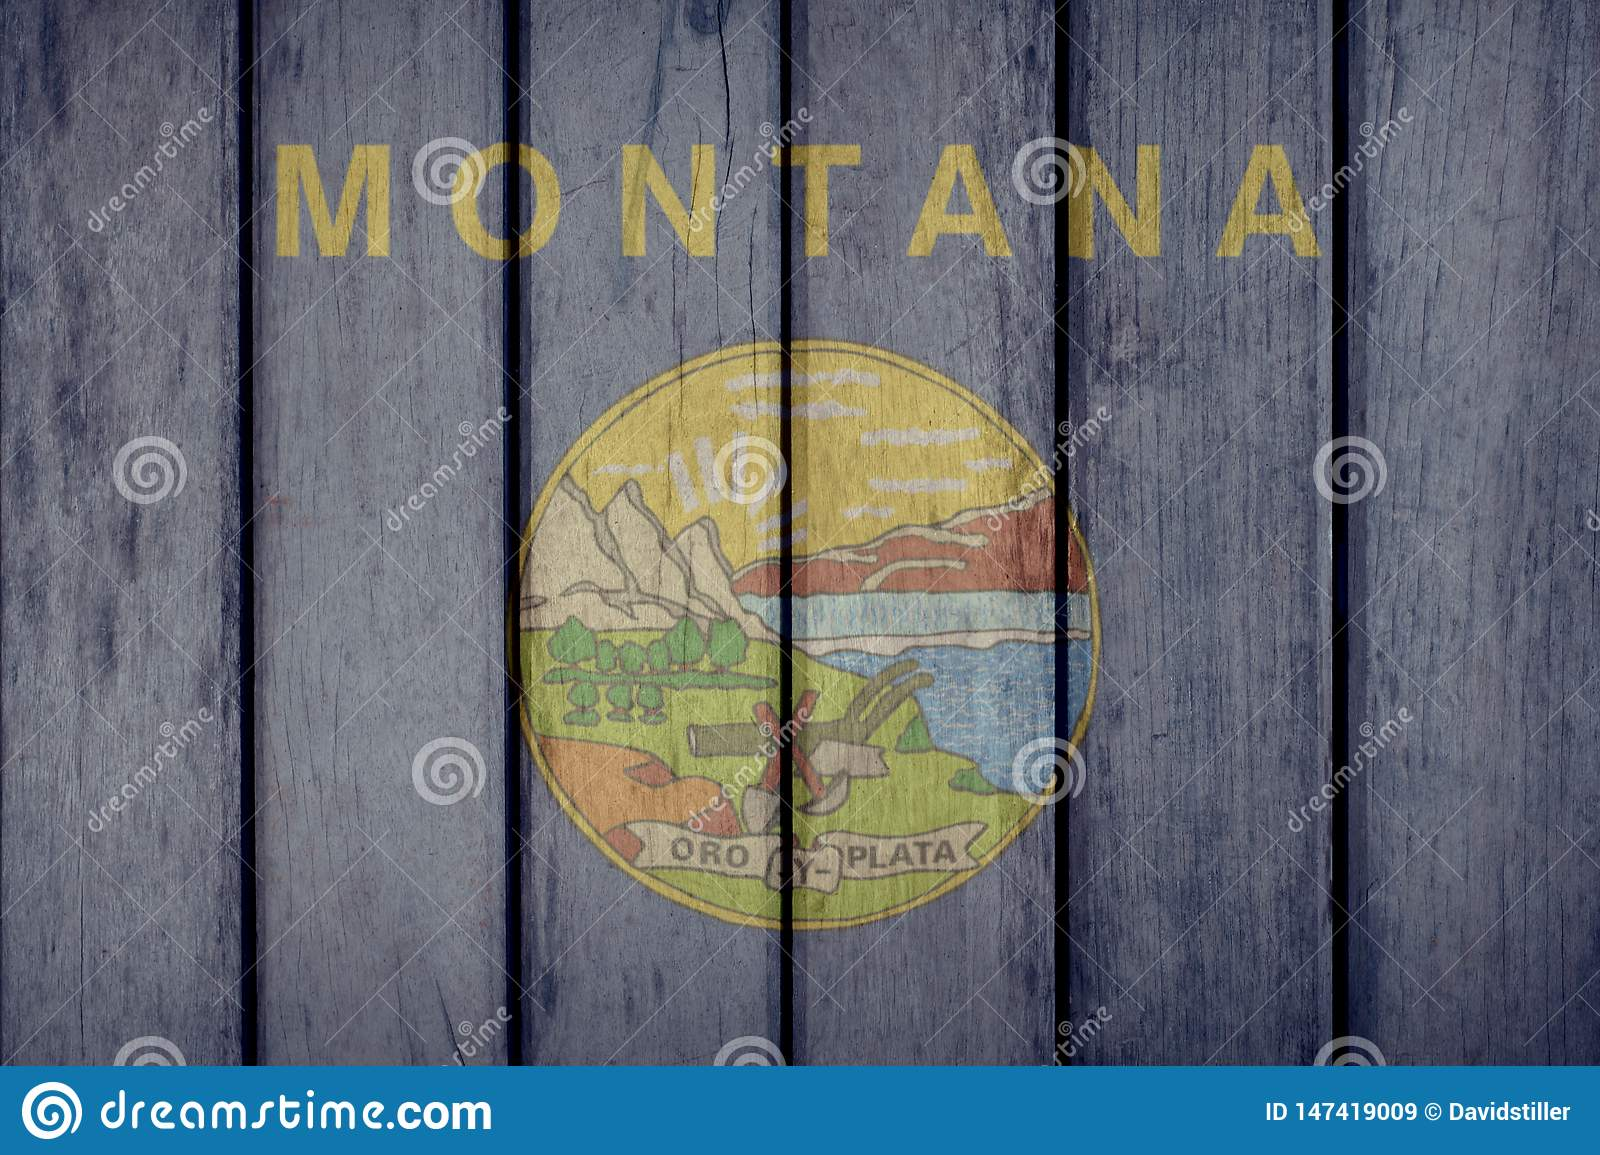 US State Montana Flag Wooden Fence